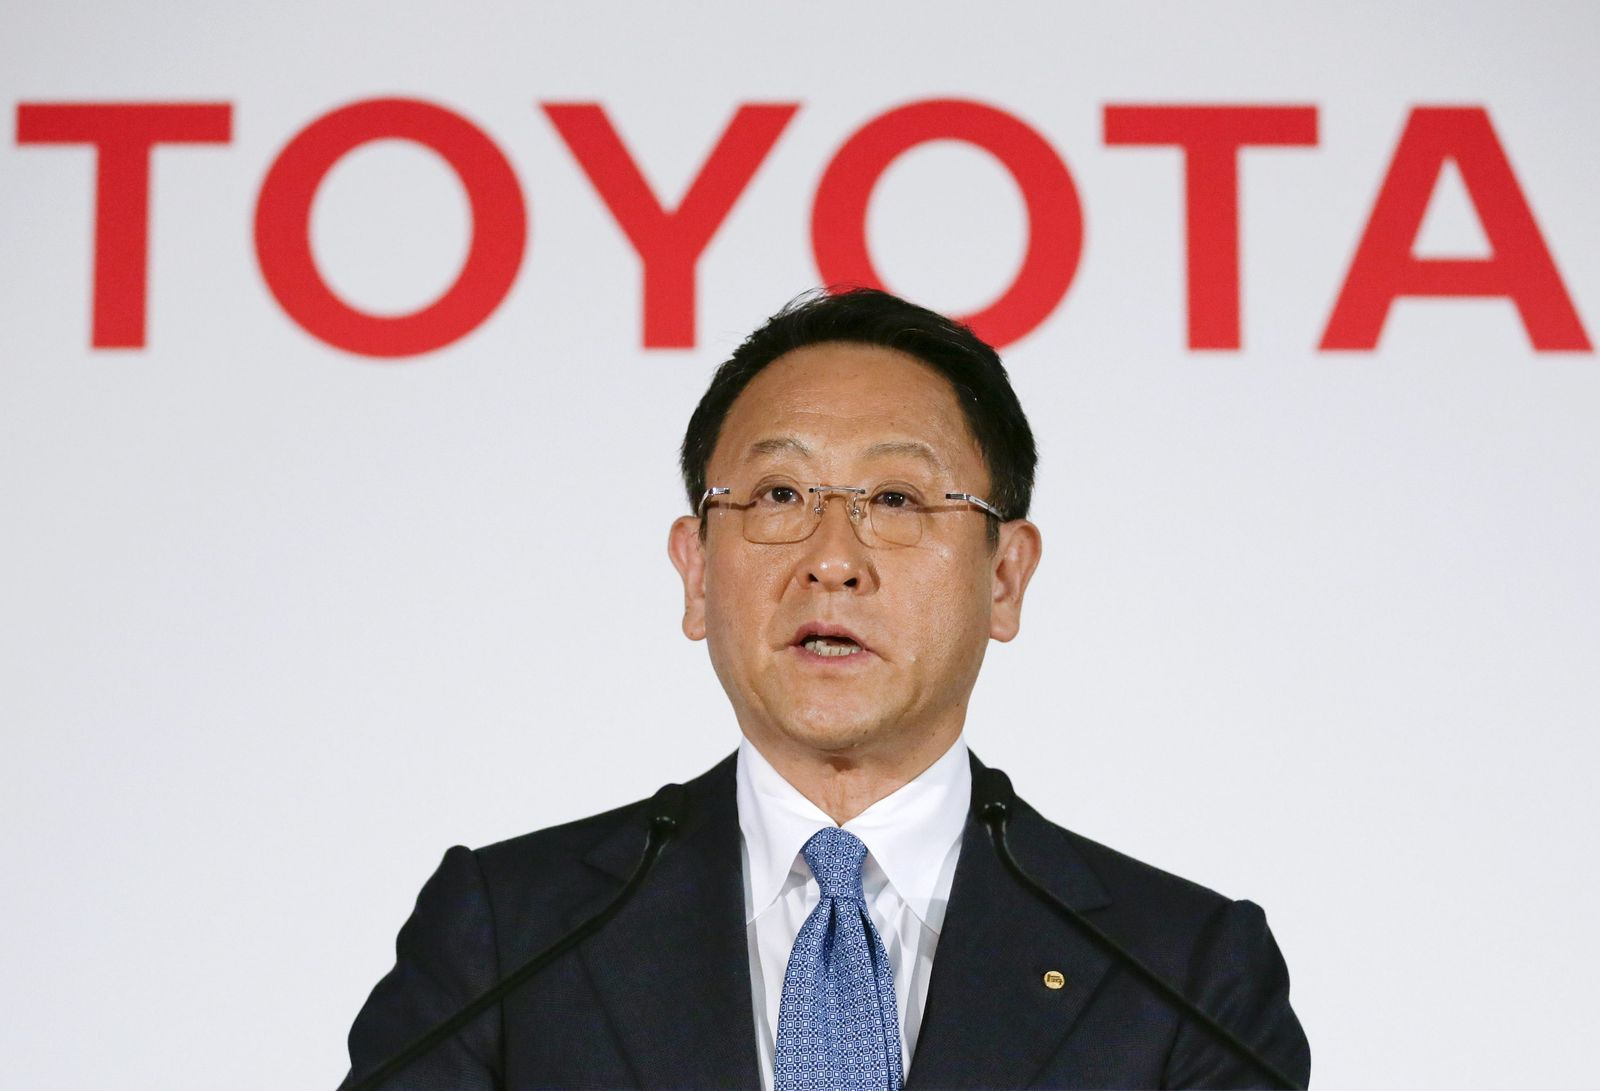 Toyota Motor announces its financial result of 2014 fiscal year